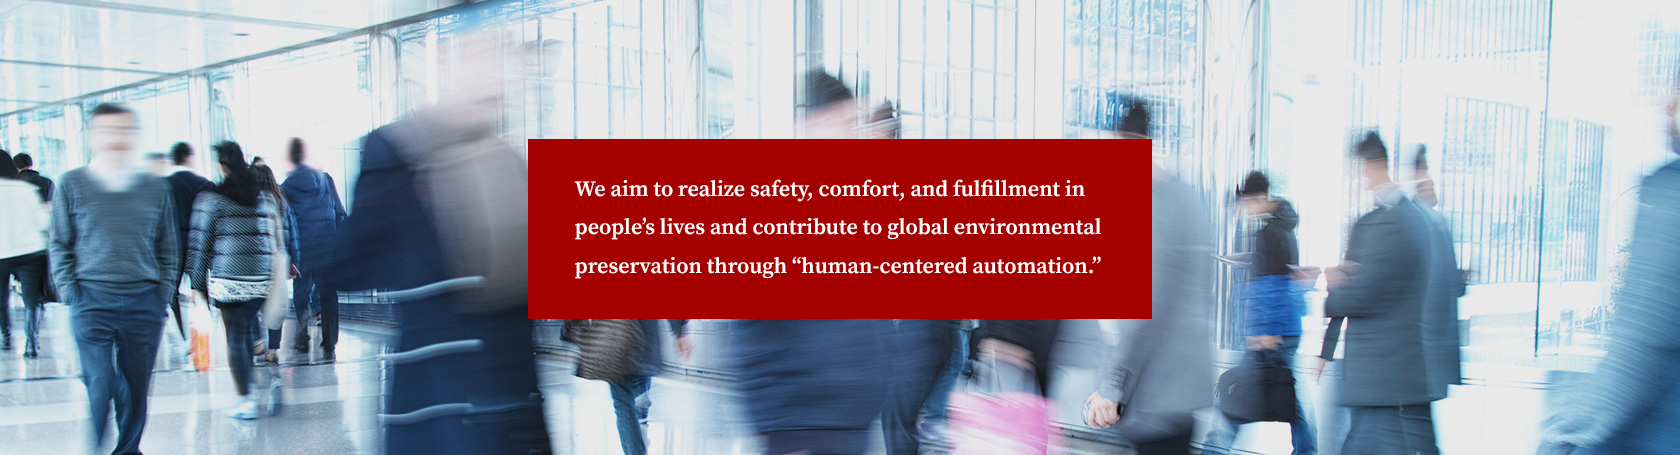 "We aim to realize safety, comfort, and fulfillment in people's lives and contribute to global environmental preservation through ""human-centered automation."""